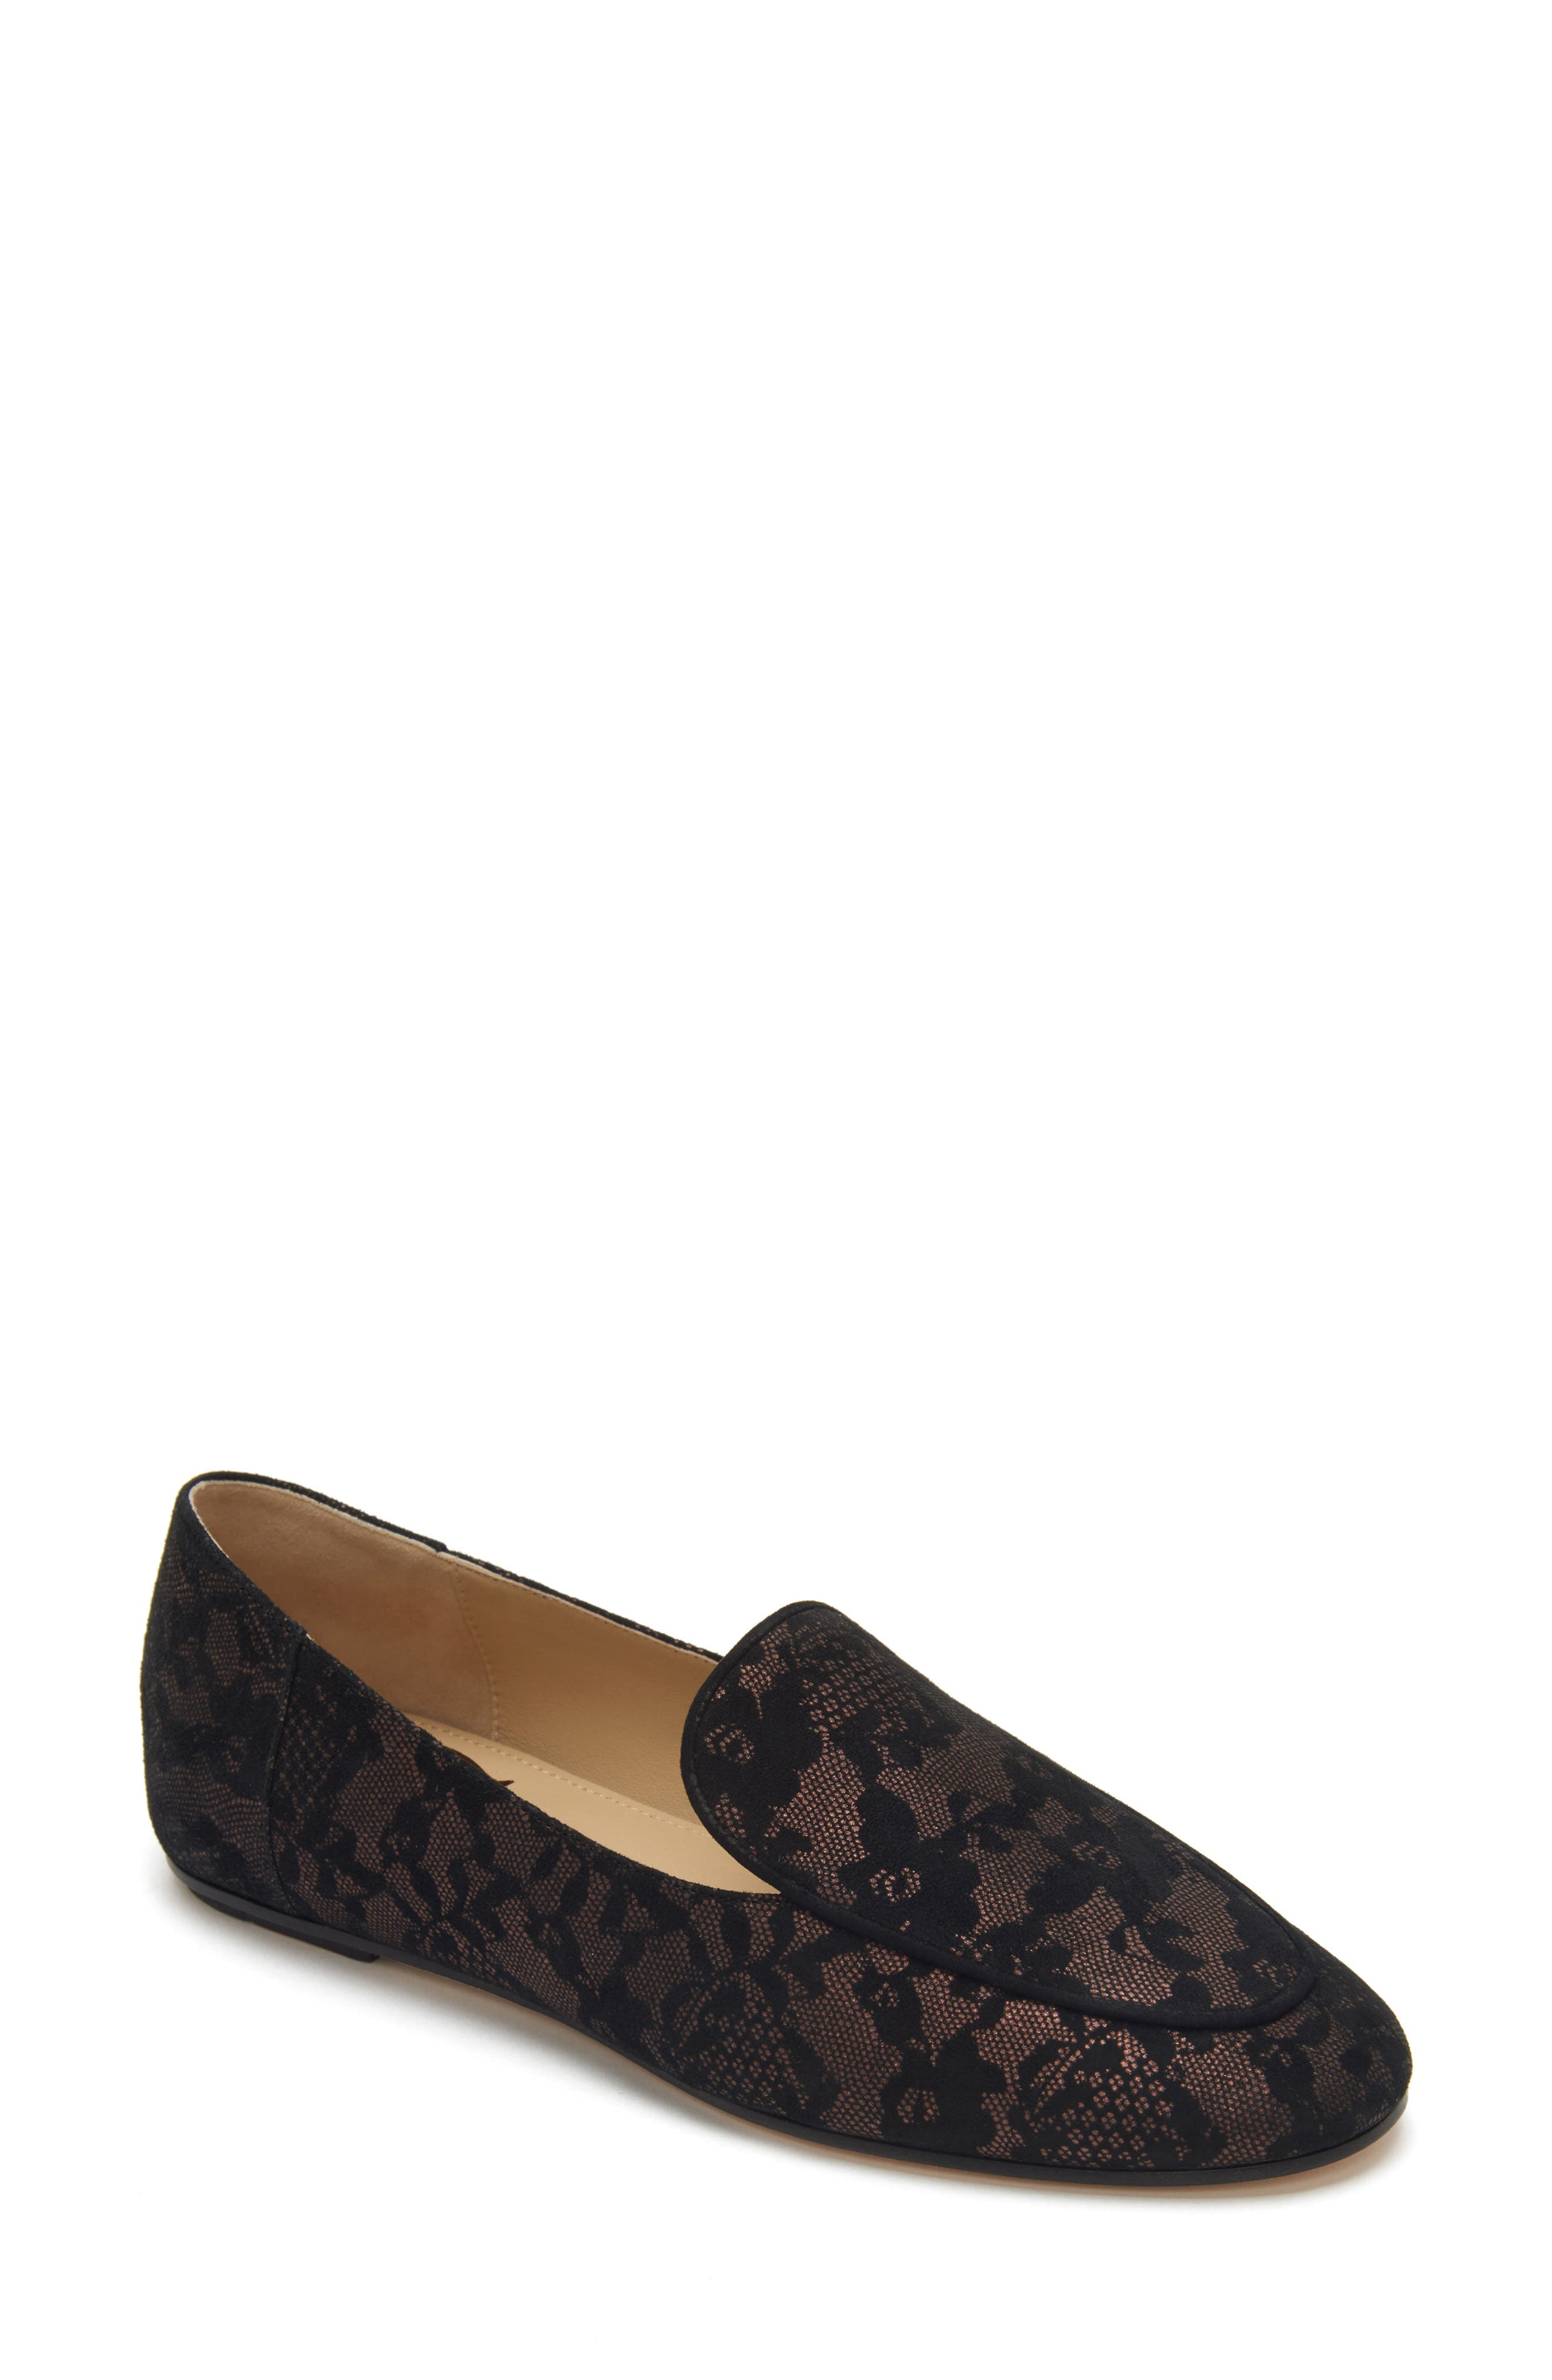 ETIENNE AIGNER Camille Loafer in Dark Brown Suede